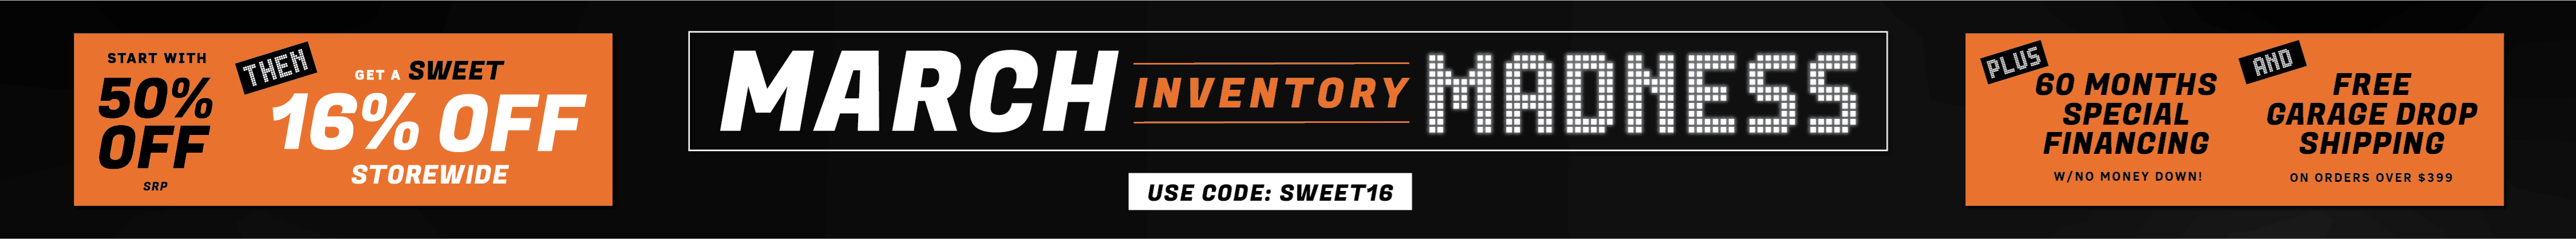 March Inventory Madness